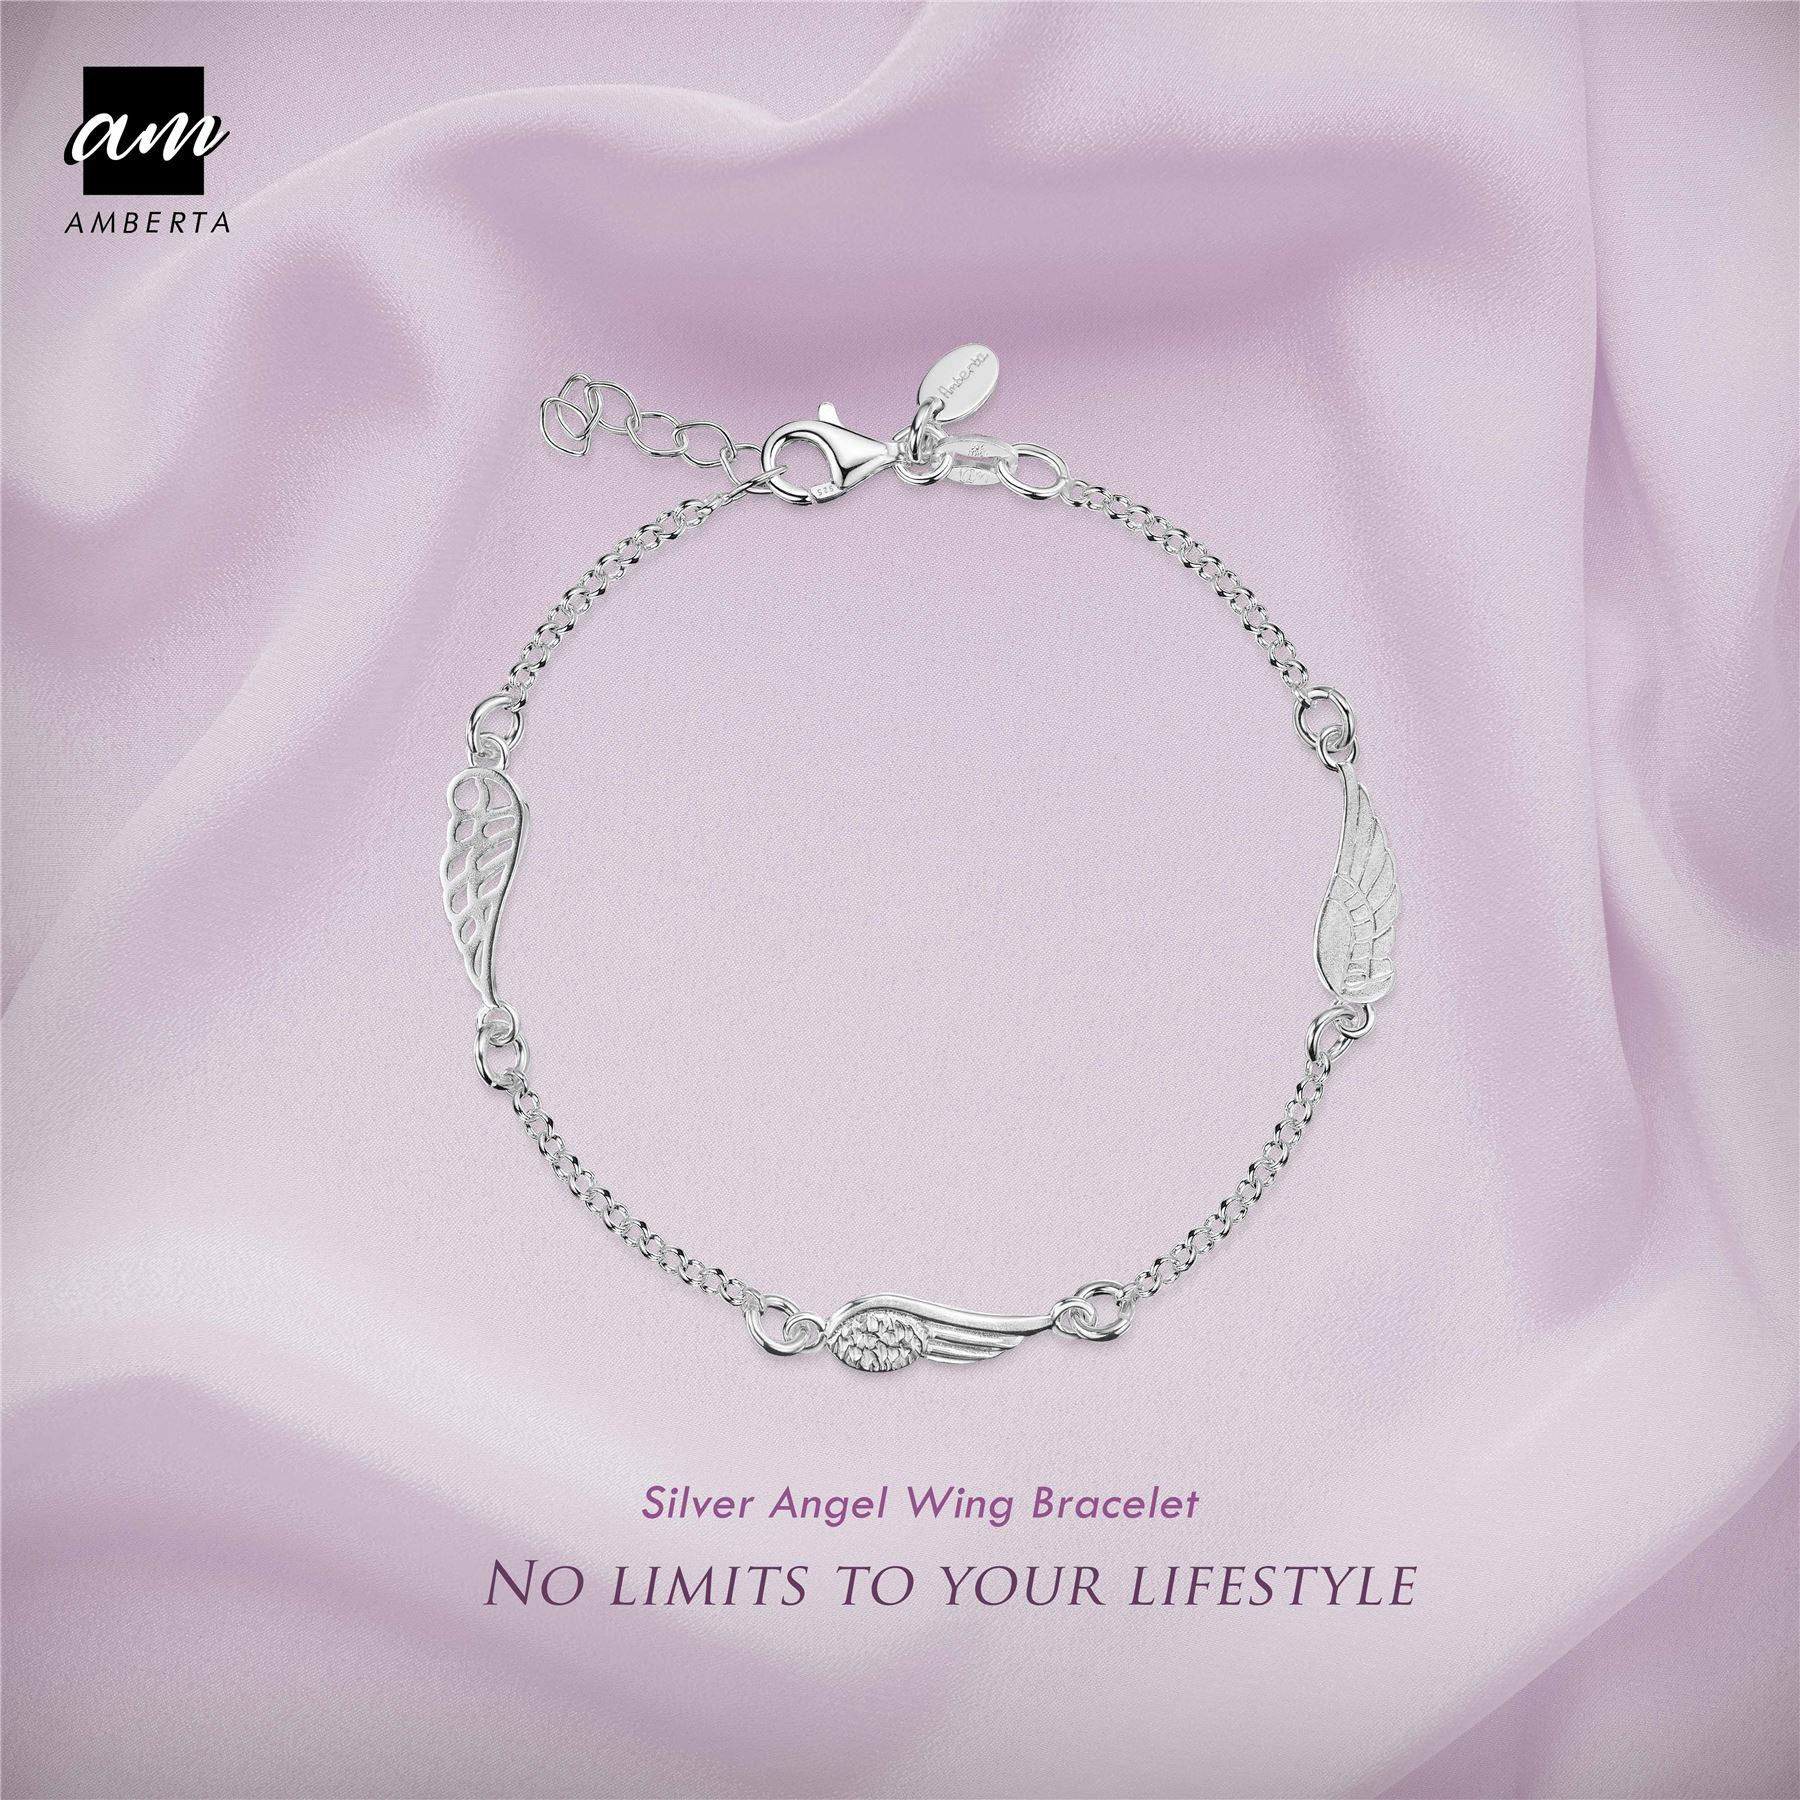 Amberta-925-Sterling-Silver-Adjustable-Rolo-Chain-Bracelet-with-Charms-for-Women miniature 6